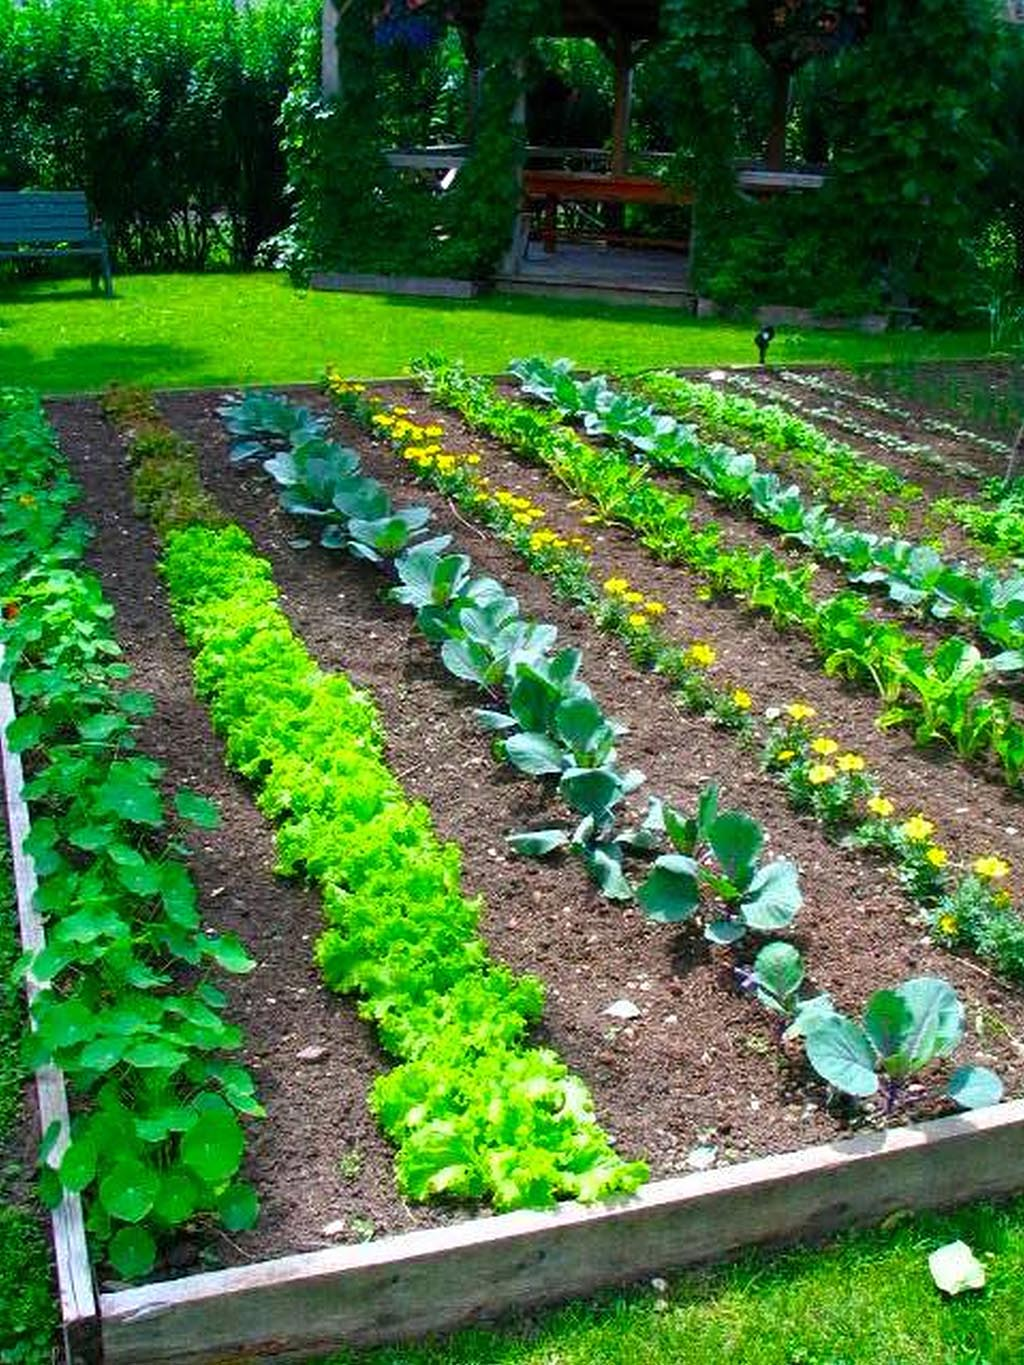 Best Plants for Home Vegetable Garden